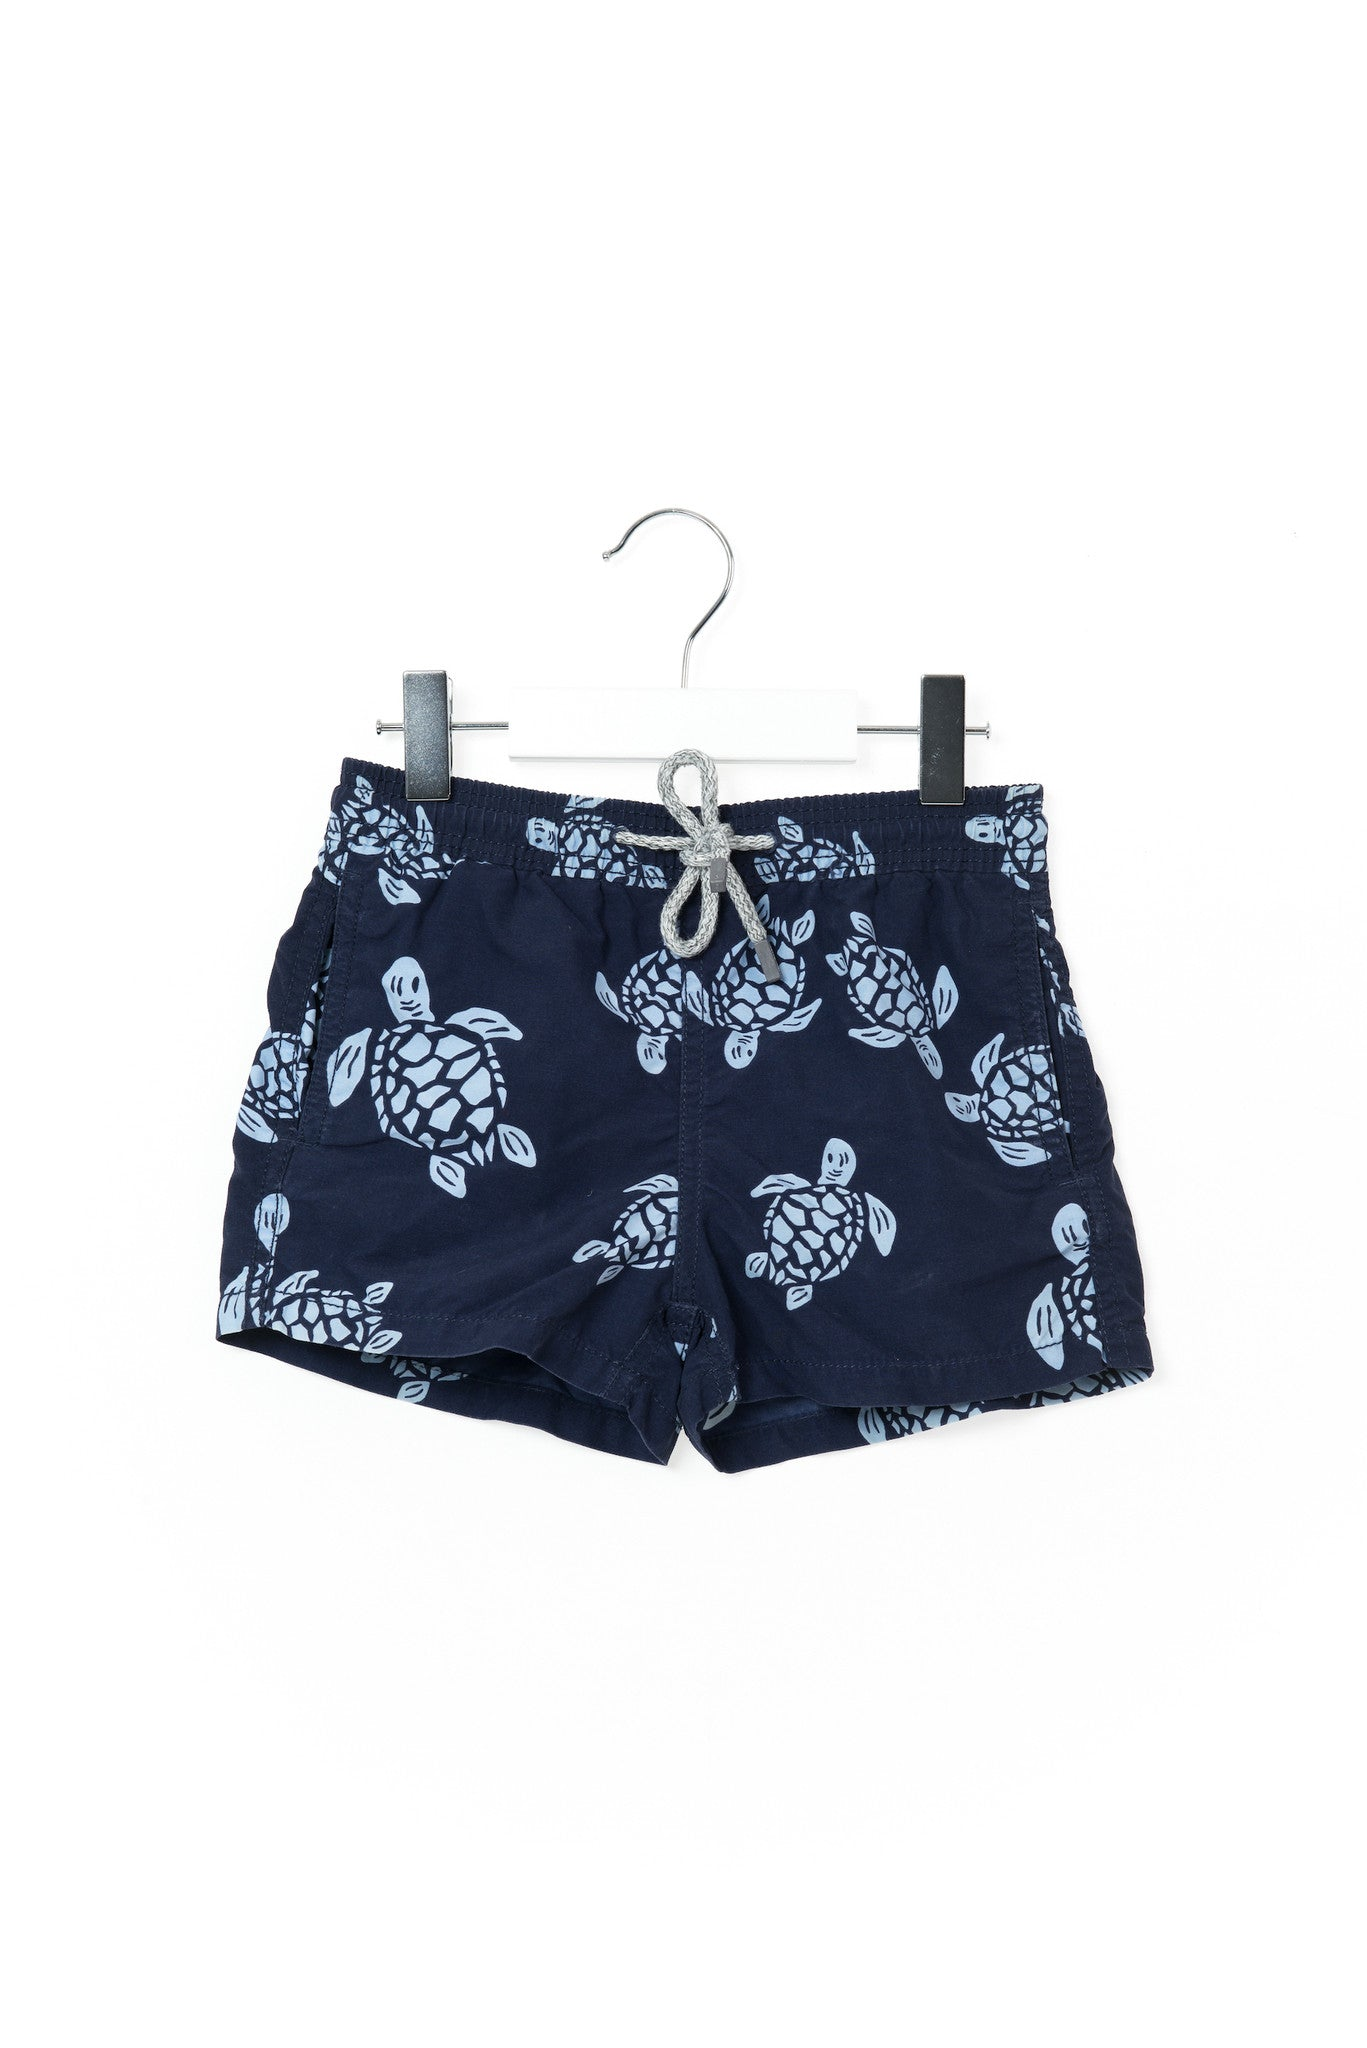 Swimwear 4T, Vilebrequin at Retykle - Online Baby & Kids Clothing Up to 90% Off